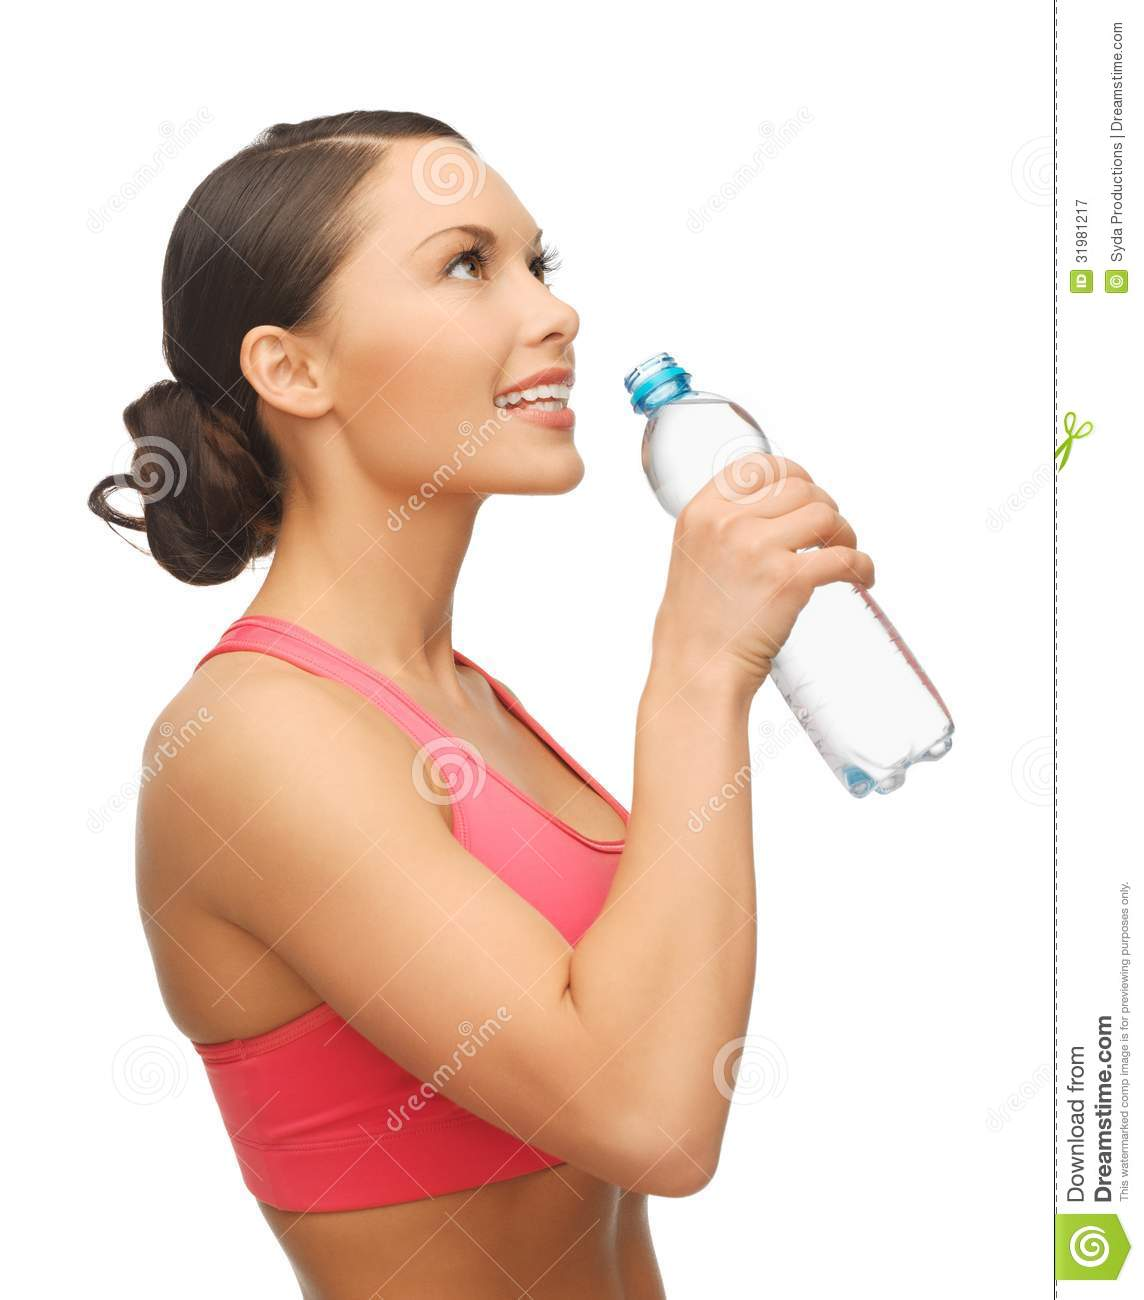 woman bottled water woman with bottle of water royalty